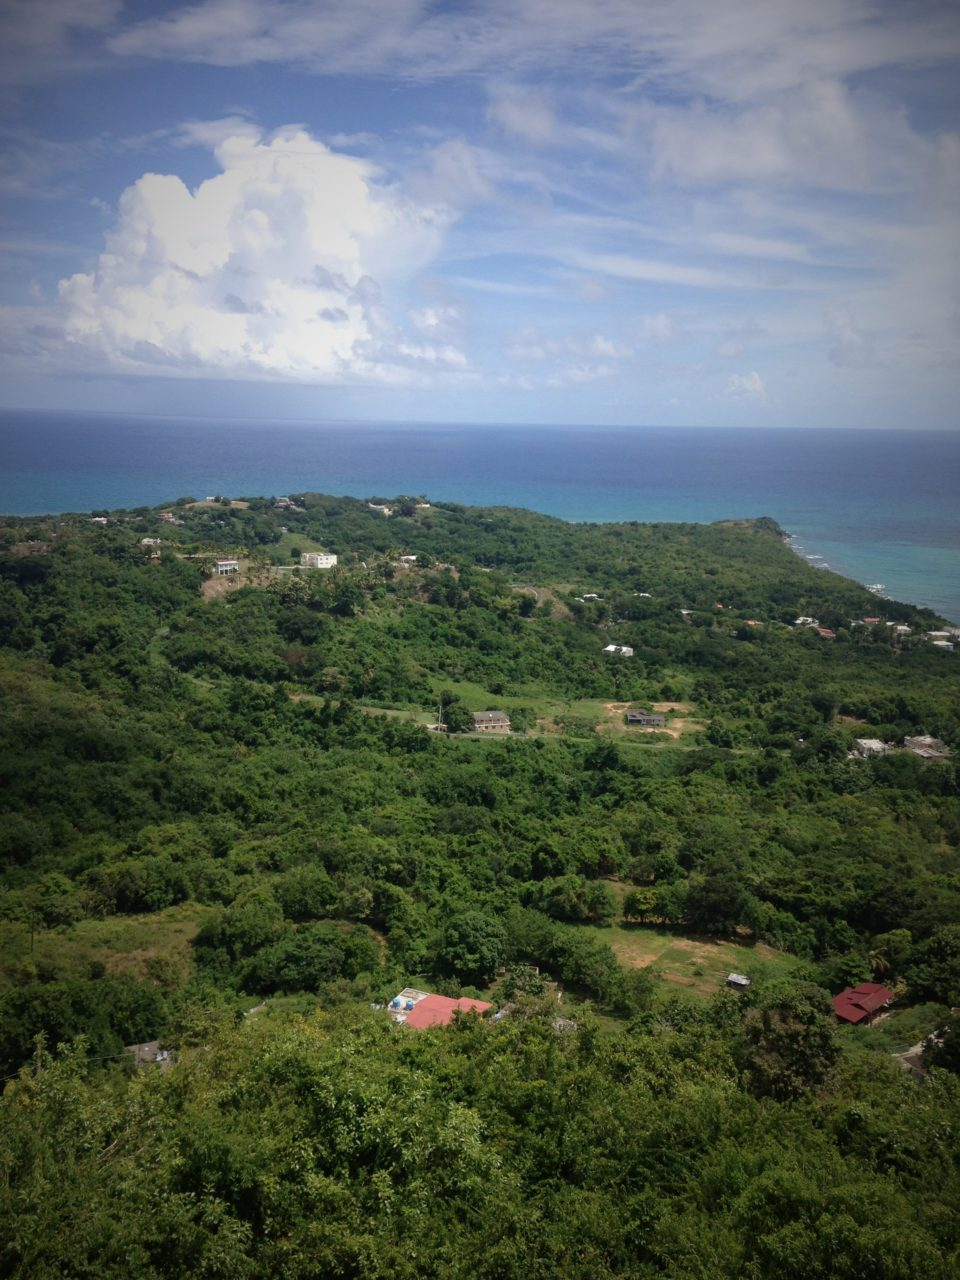 View from the Southeastern part of Puerto Rico out to the Caribbean ocean.